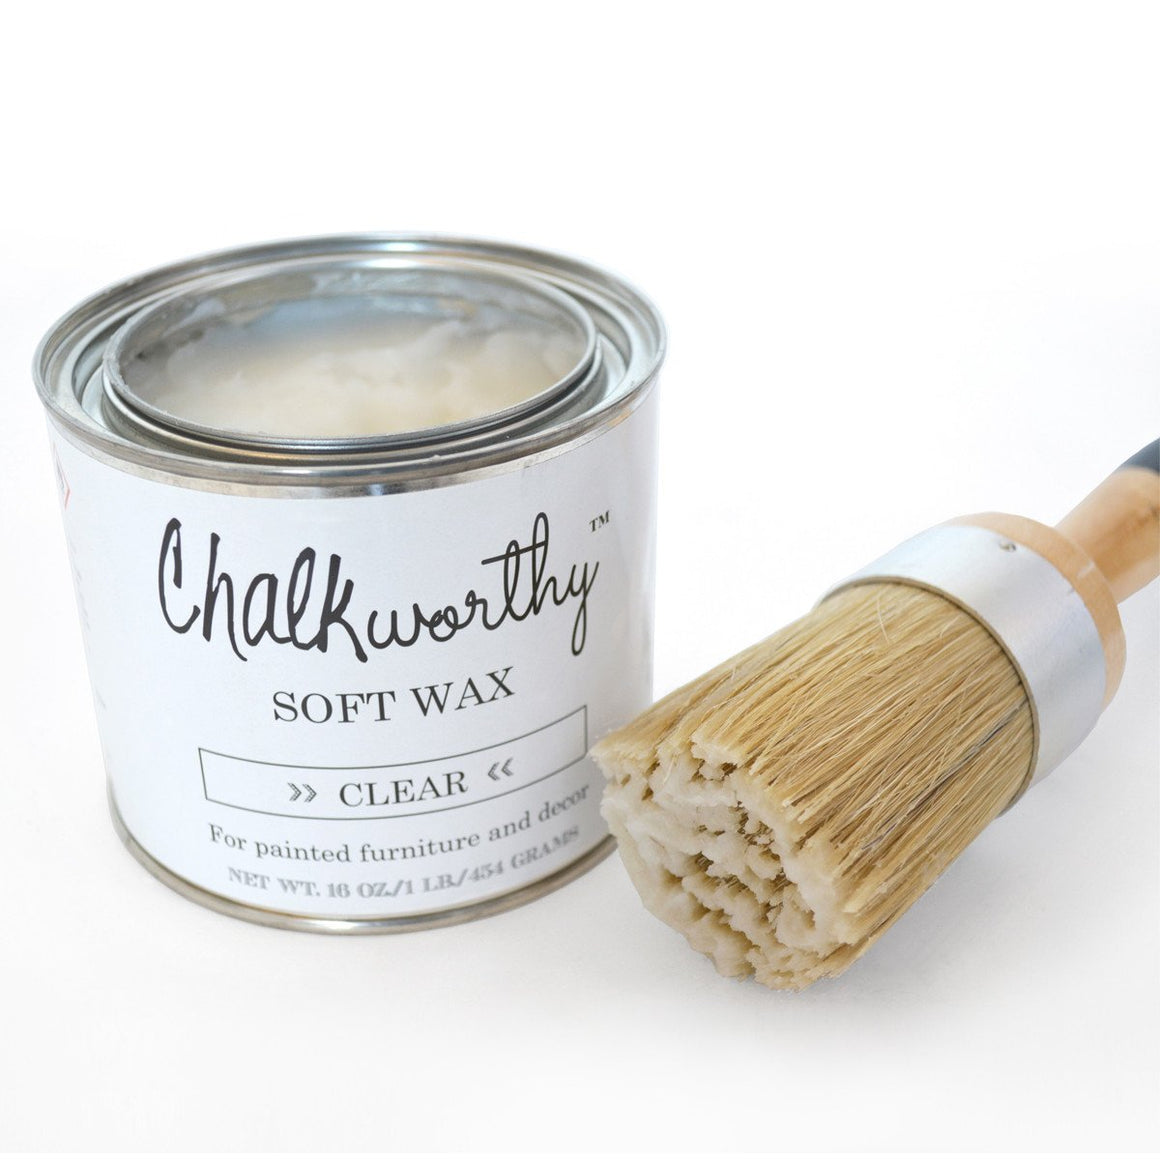 Chalkworthy Wax and Tool Antiquing Kit